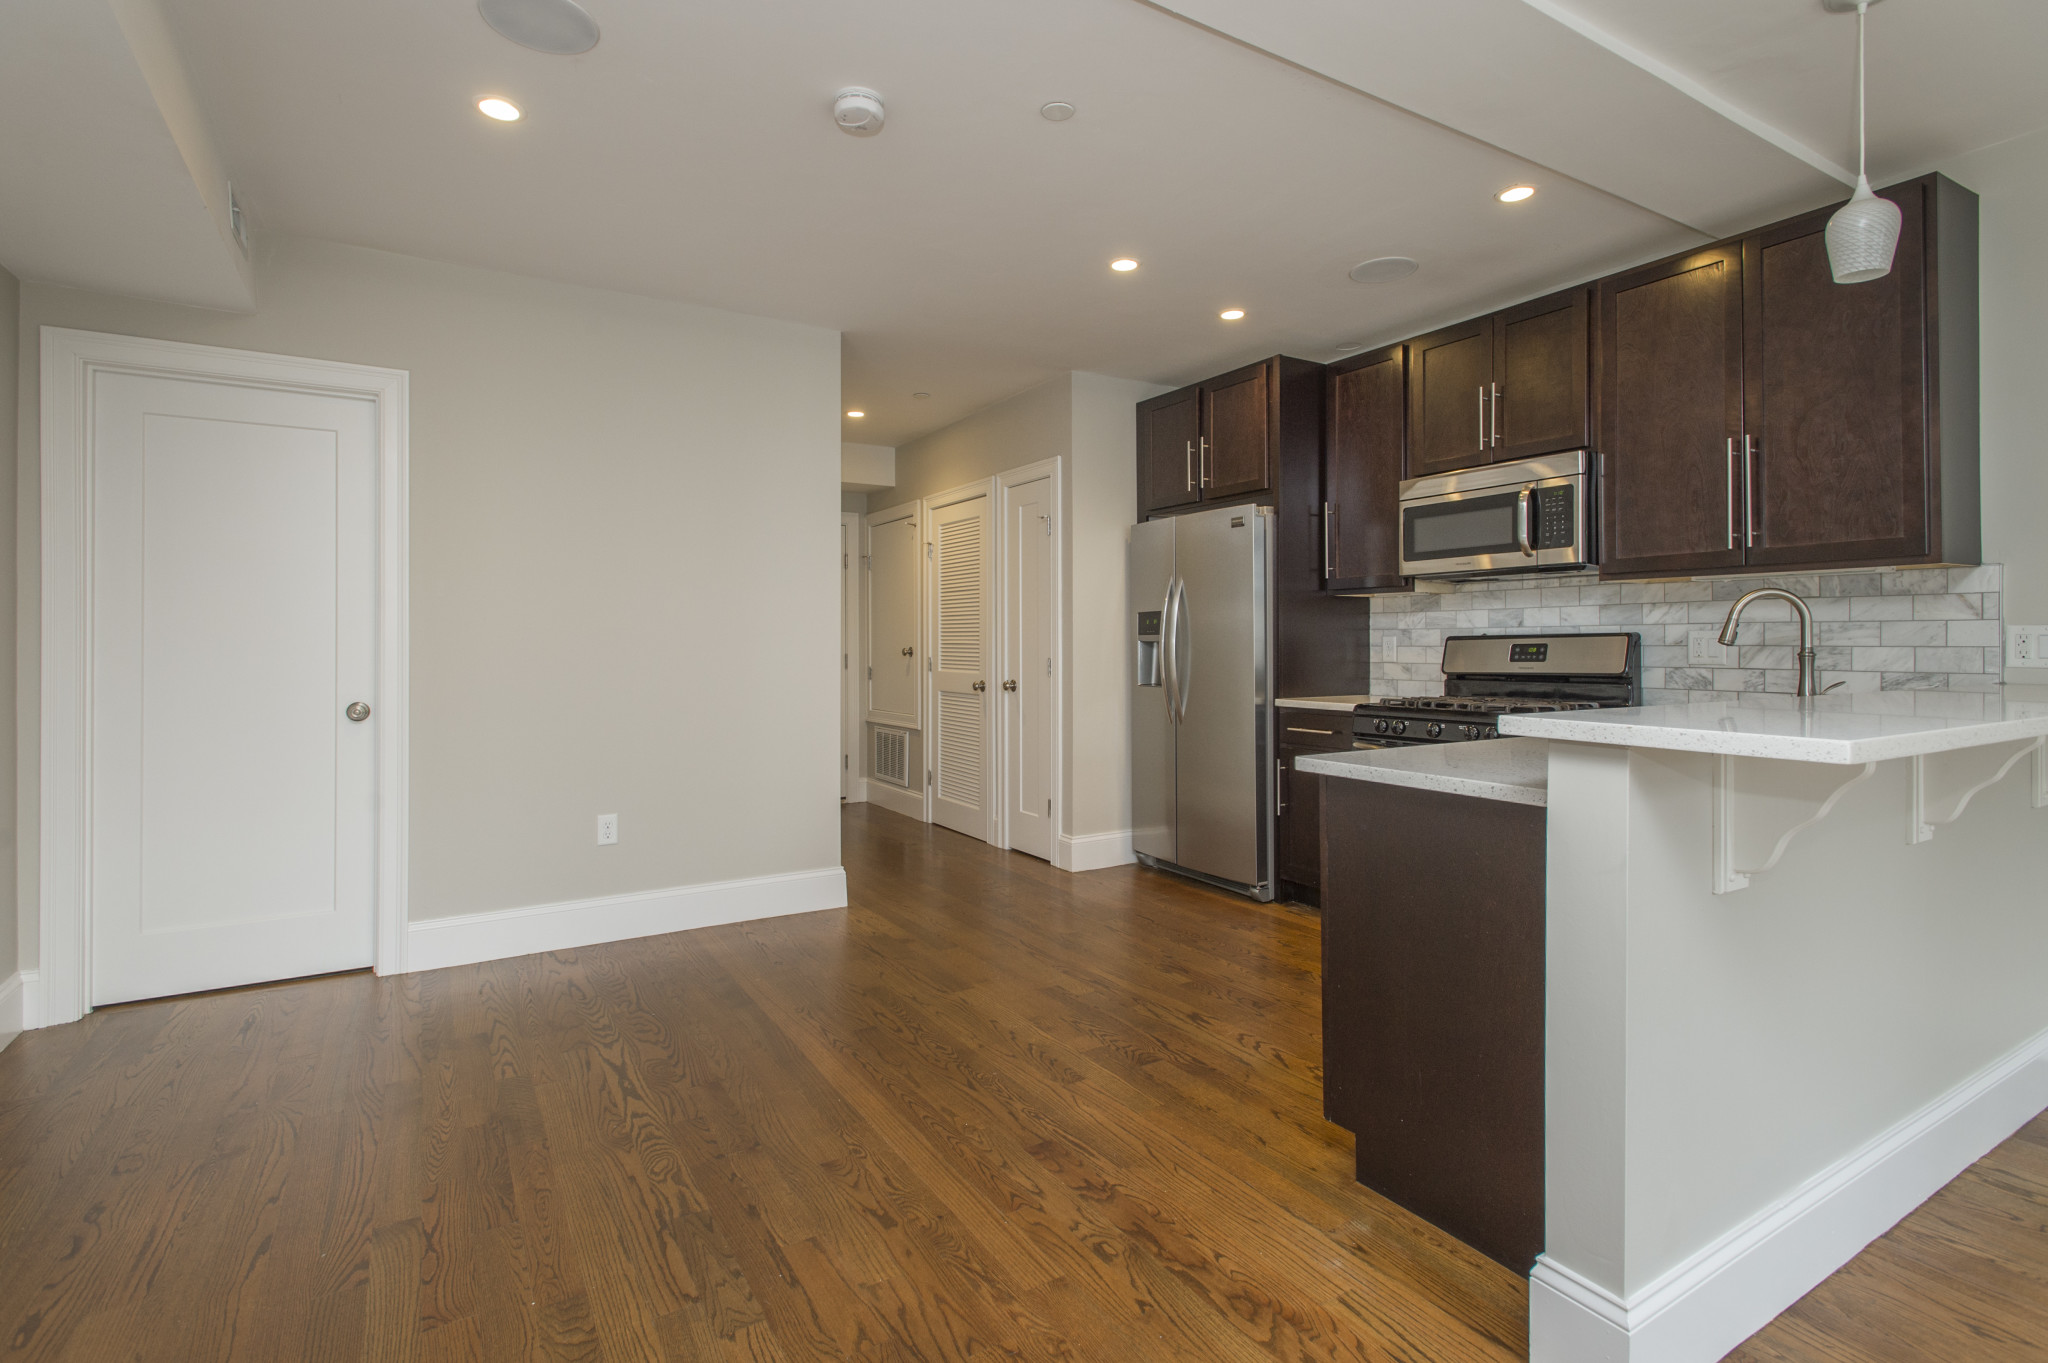 2 Beds, 1 Bath apartment in Boston, South Boston for $2,900